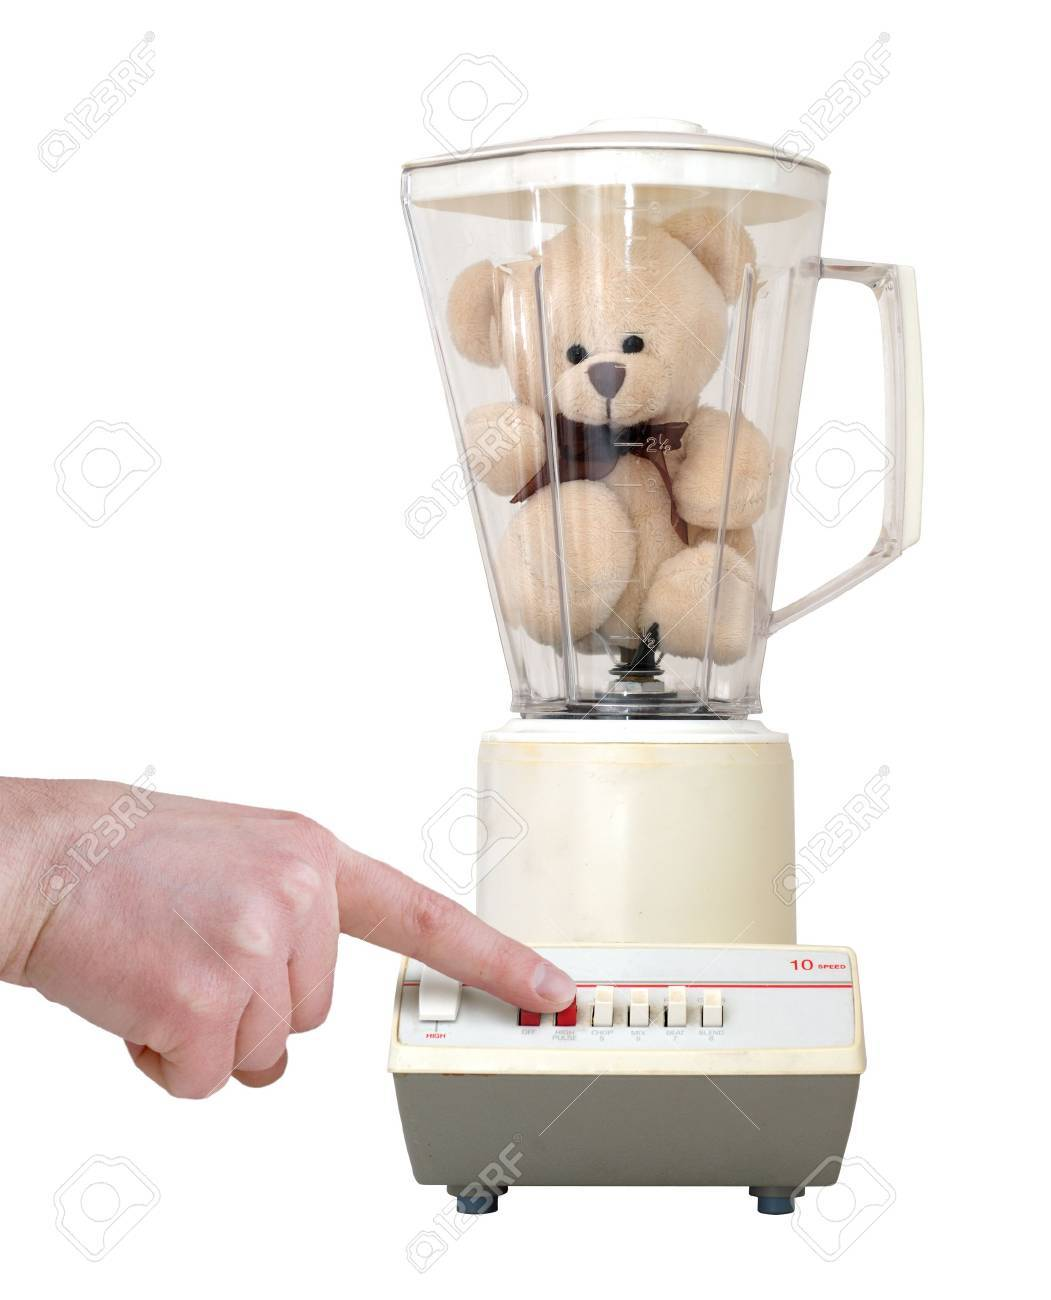 Cute little teddy bear in an old-fashioned blender, with a finger pushing the button. Isolated on a white background. Stock Photo - 759885